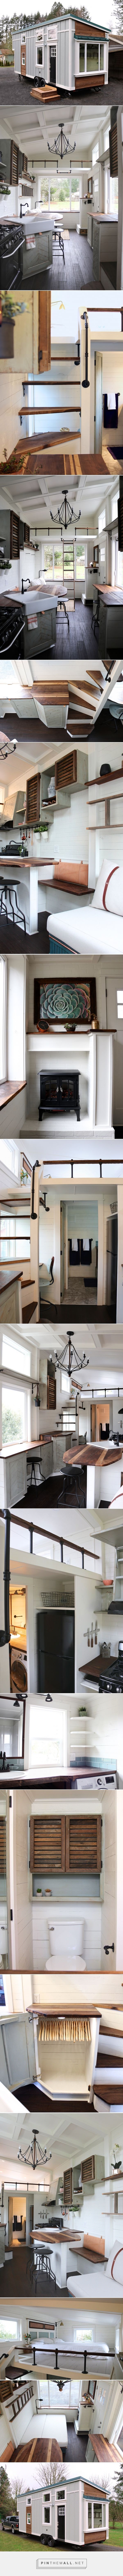 The Getaway – Tiny House Swoon a grouped images picture Pin